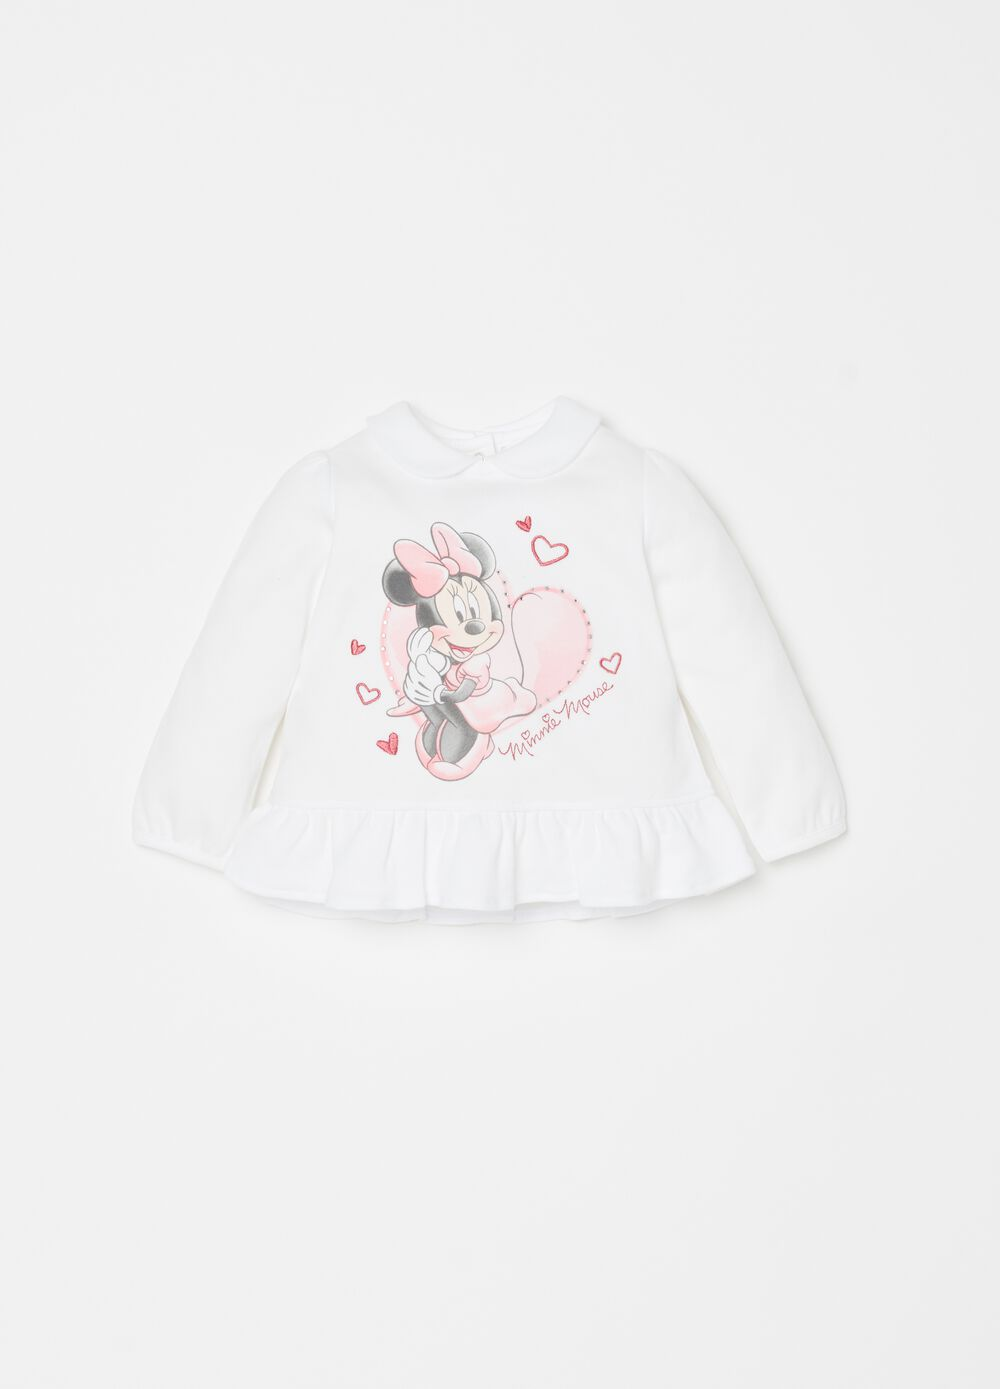 100% cotton T-shirt with Disney Minnie Mouse print